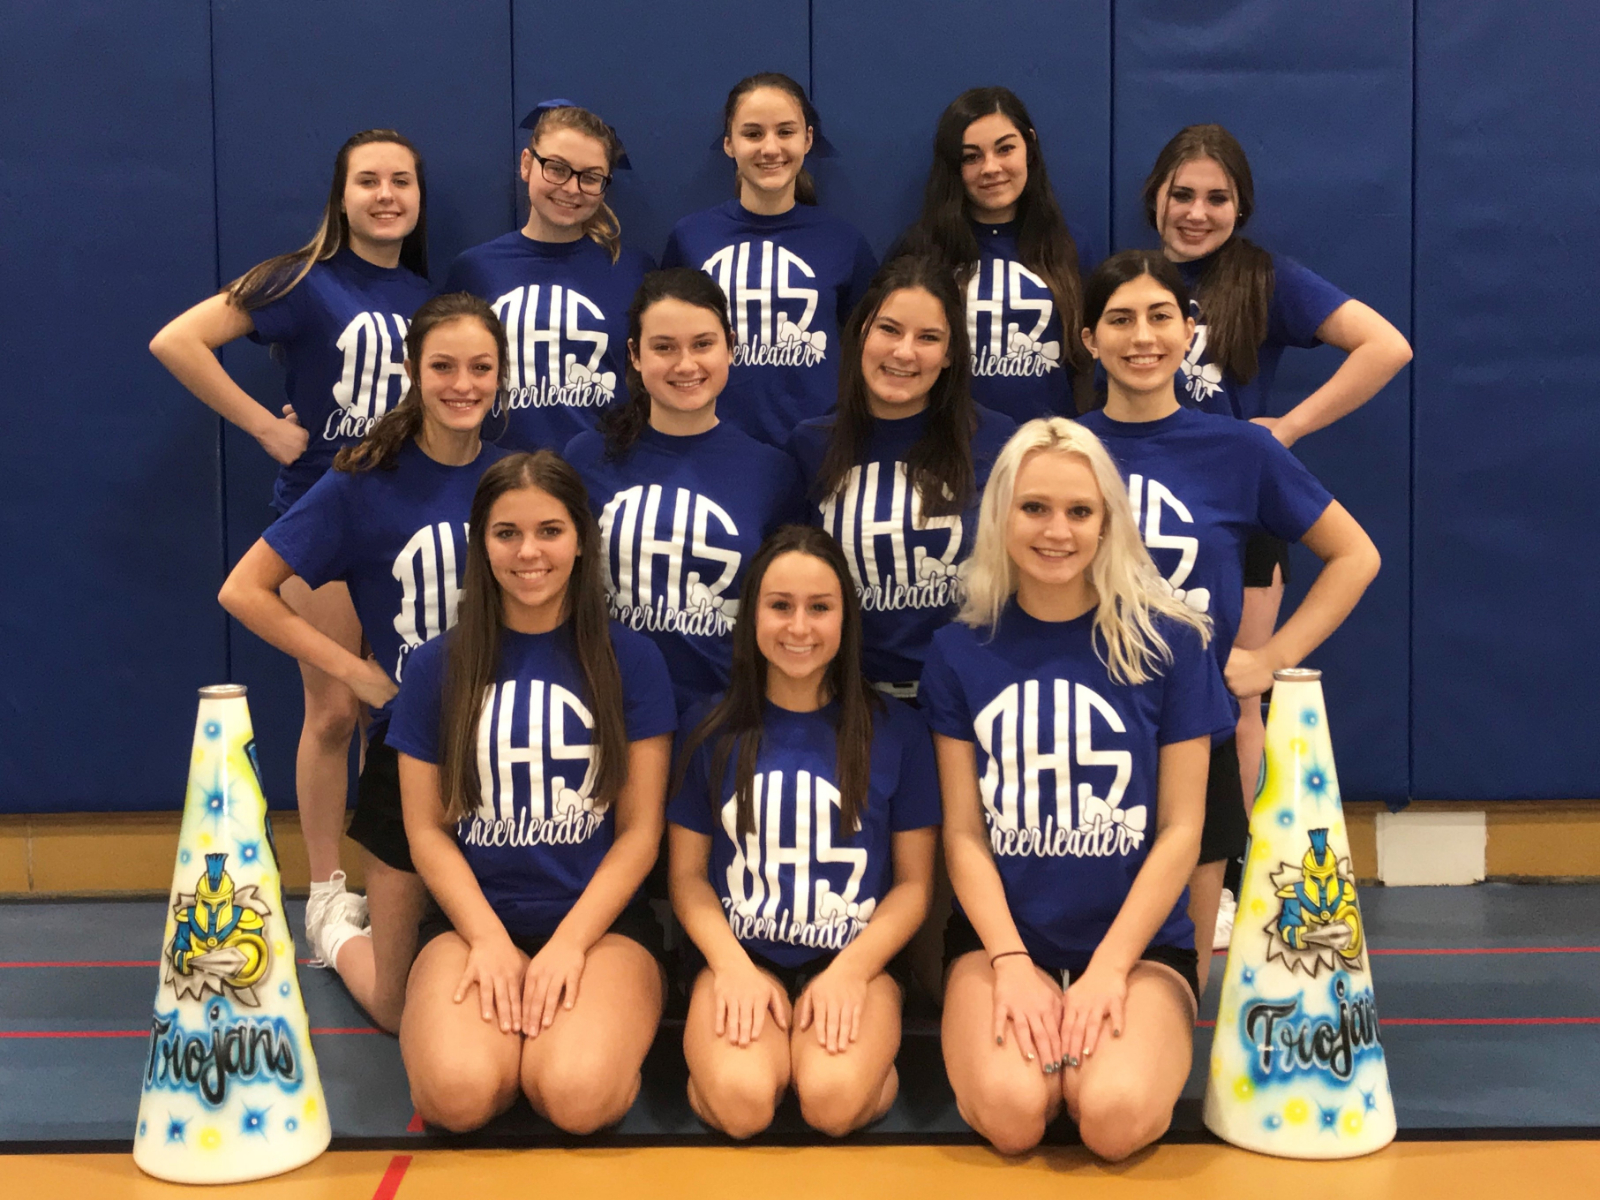 Trojan Cheerleaders Compete at WPIAL Championships in Search of Bid to Hershey!